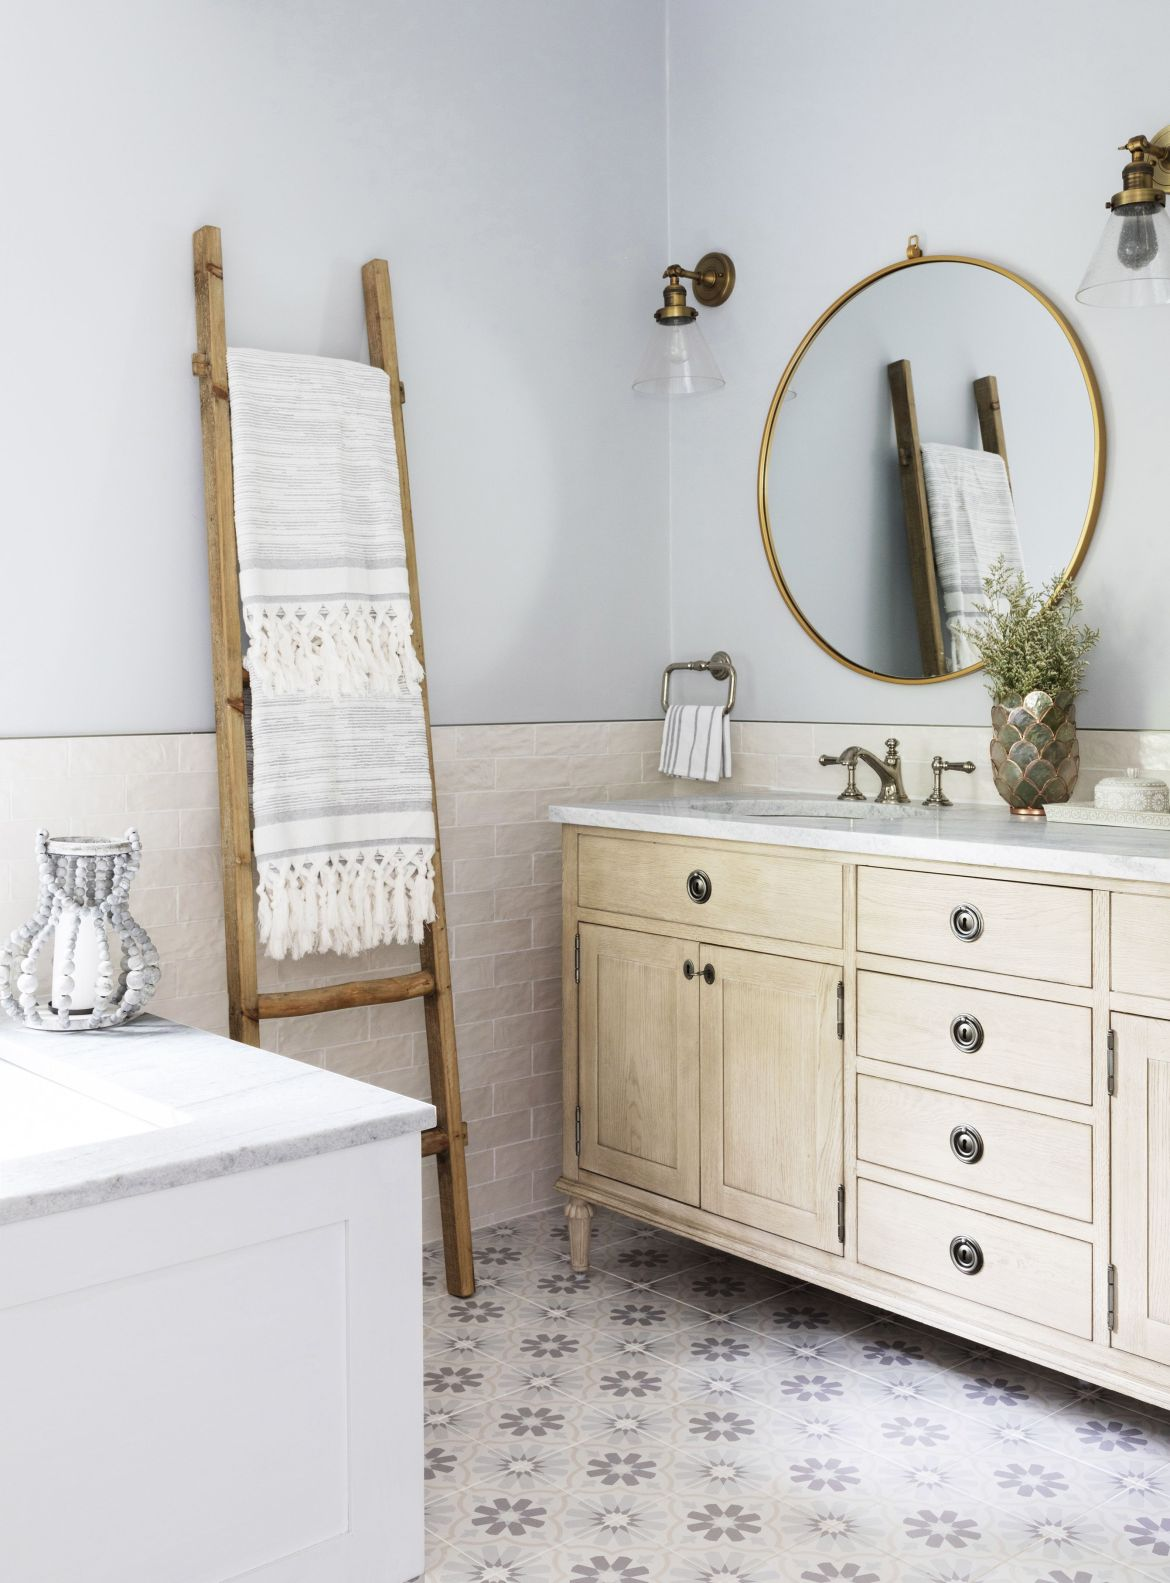 home featuring warm neutrals and soothing blue hues to accent the beautiful architecture of the vintage home interior designer karen b wolf bathroom with ladder as towel rod